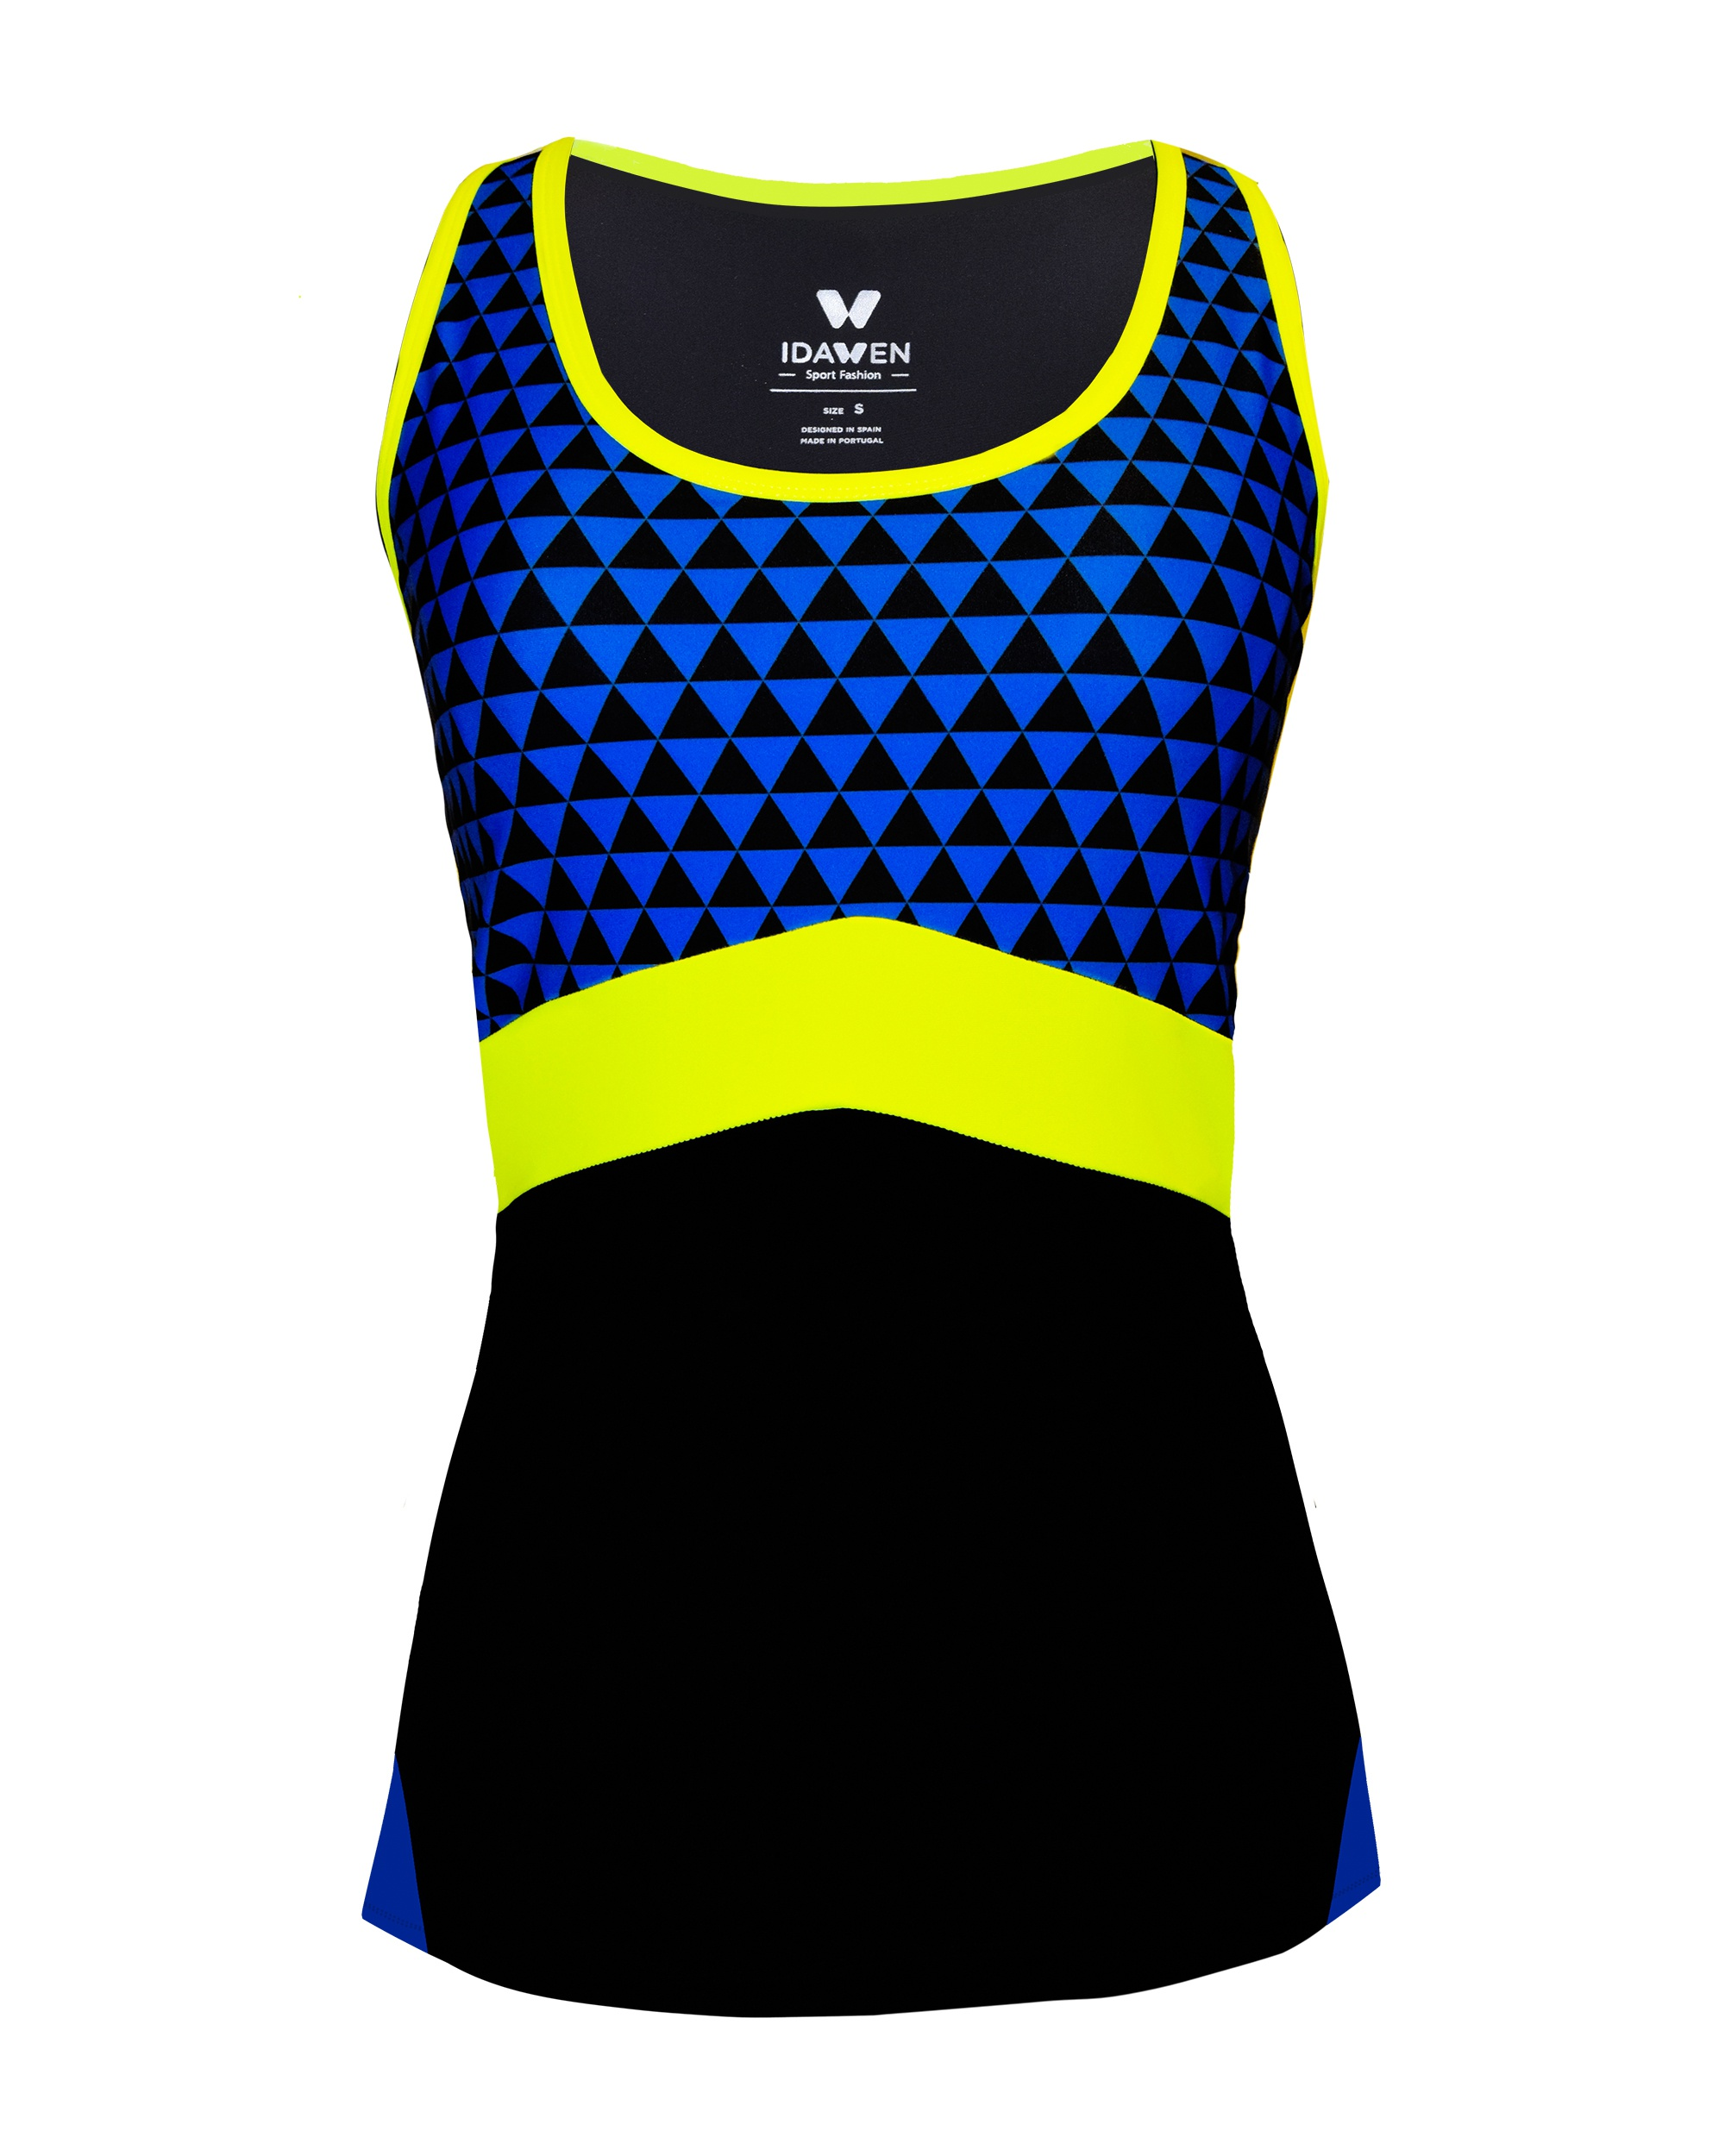 c79592494710b sport t-shirt TOP KLEIN SPORTS BRAS AND TOPS CE IDAWEN - Woman